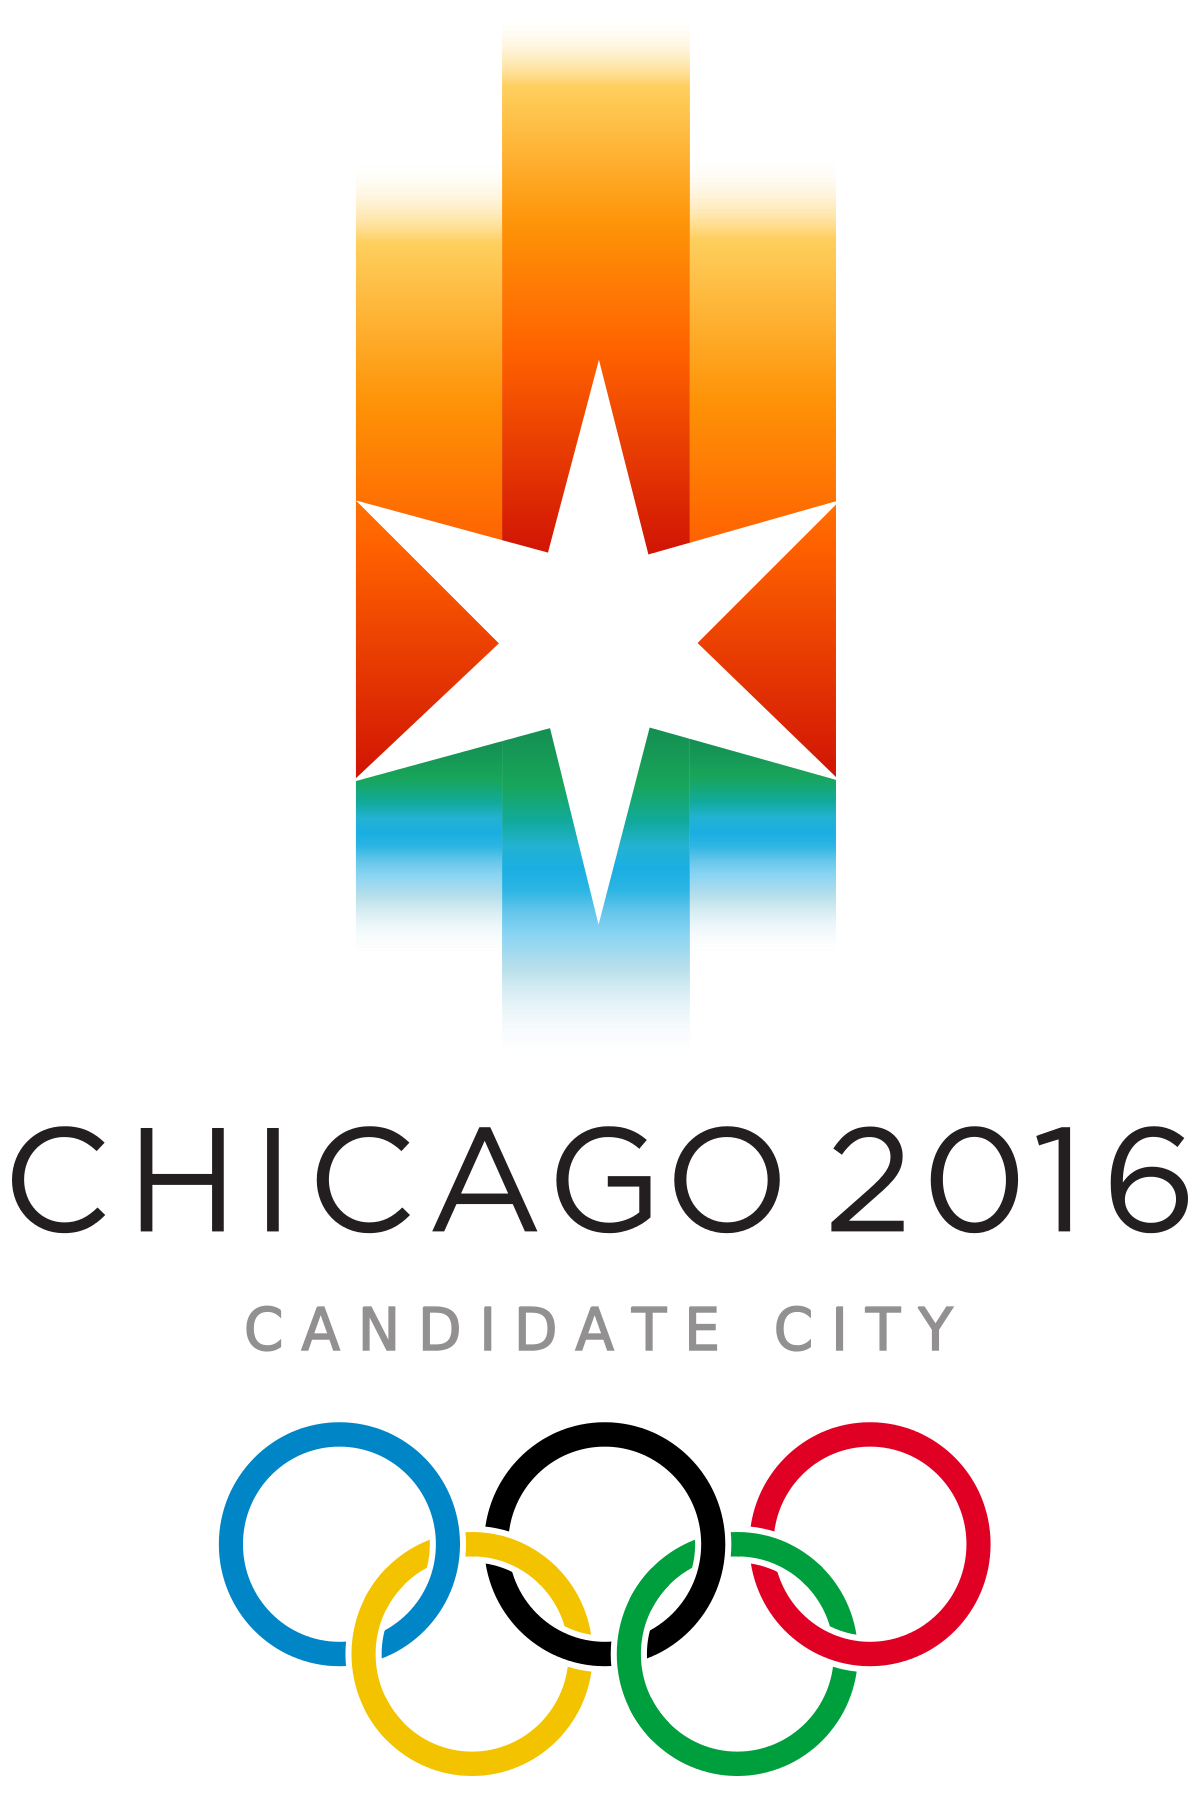 Chicago bid for the 2016 Summer Olympics - Wikipedia